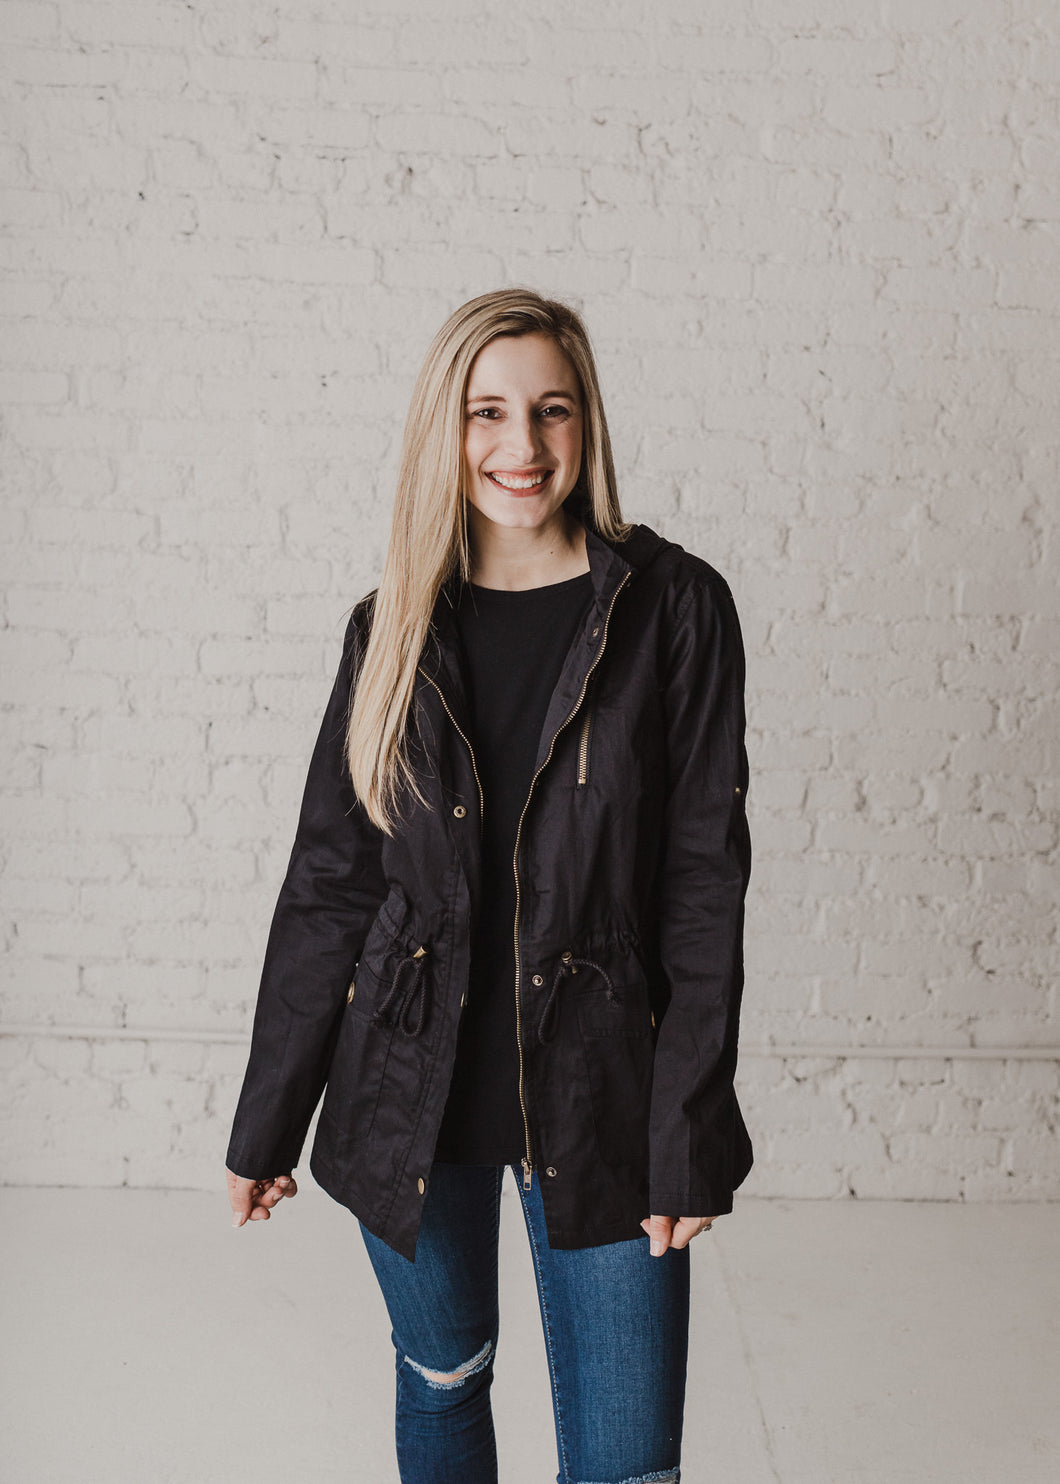 Adore You Jacket - Black